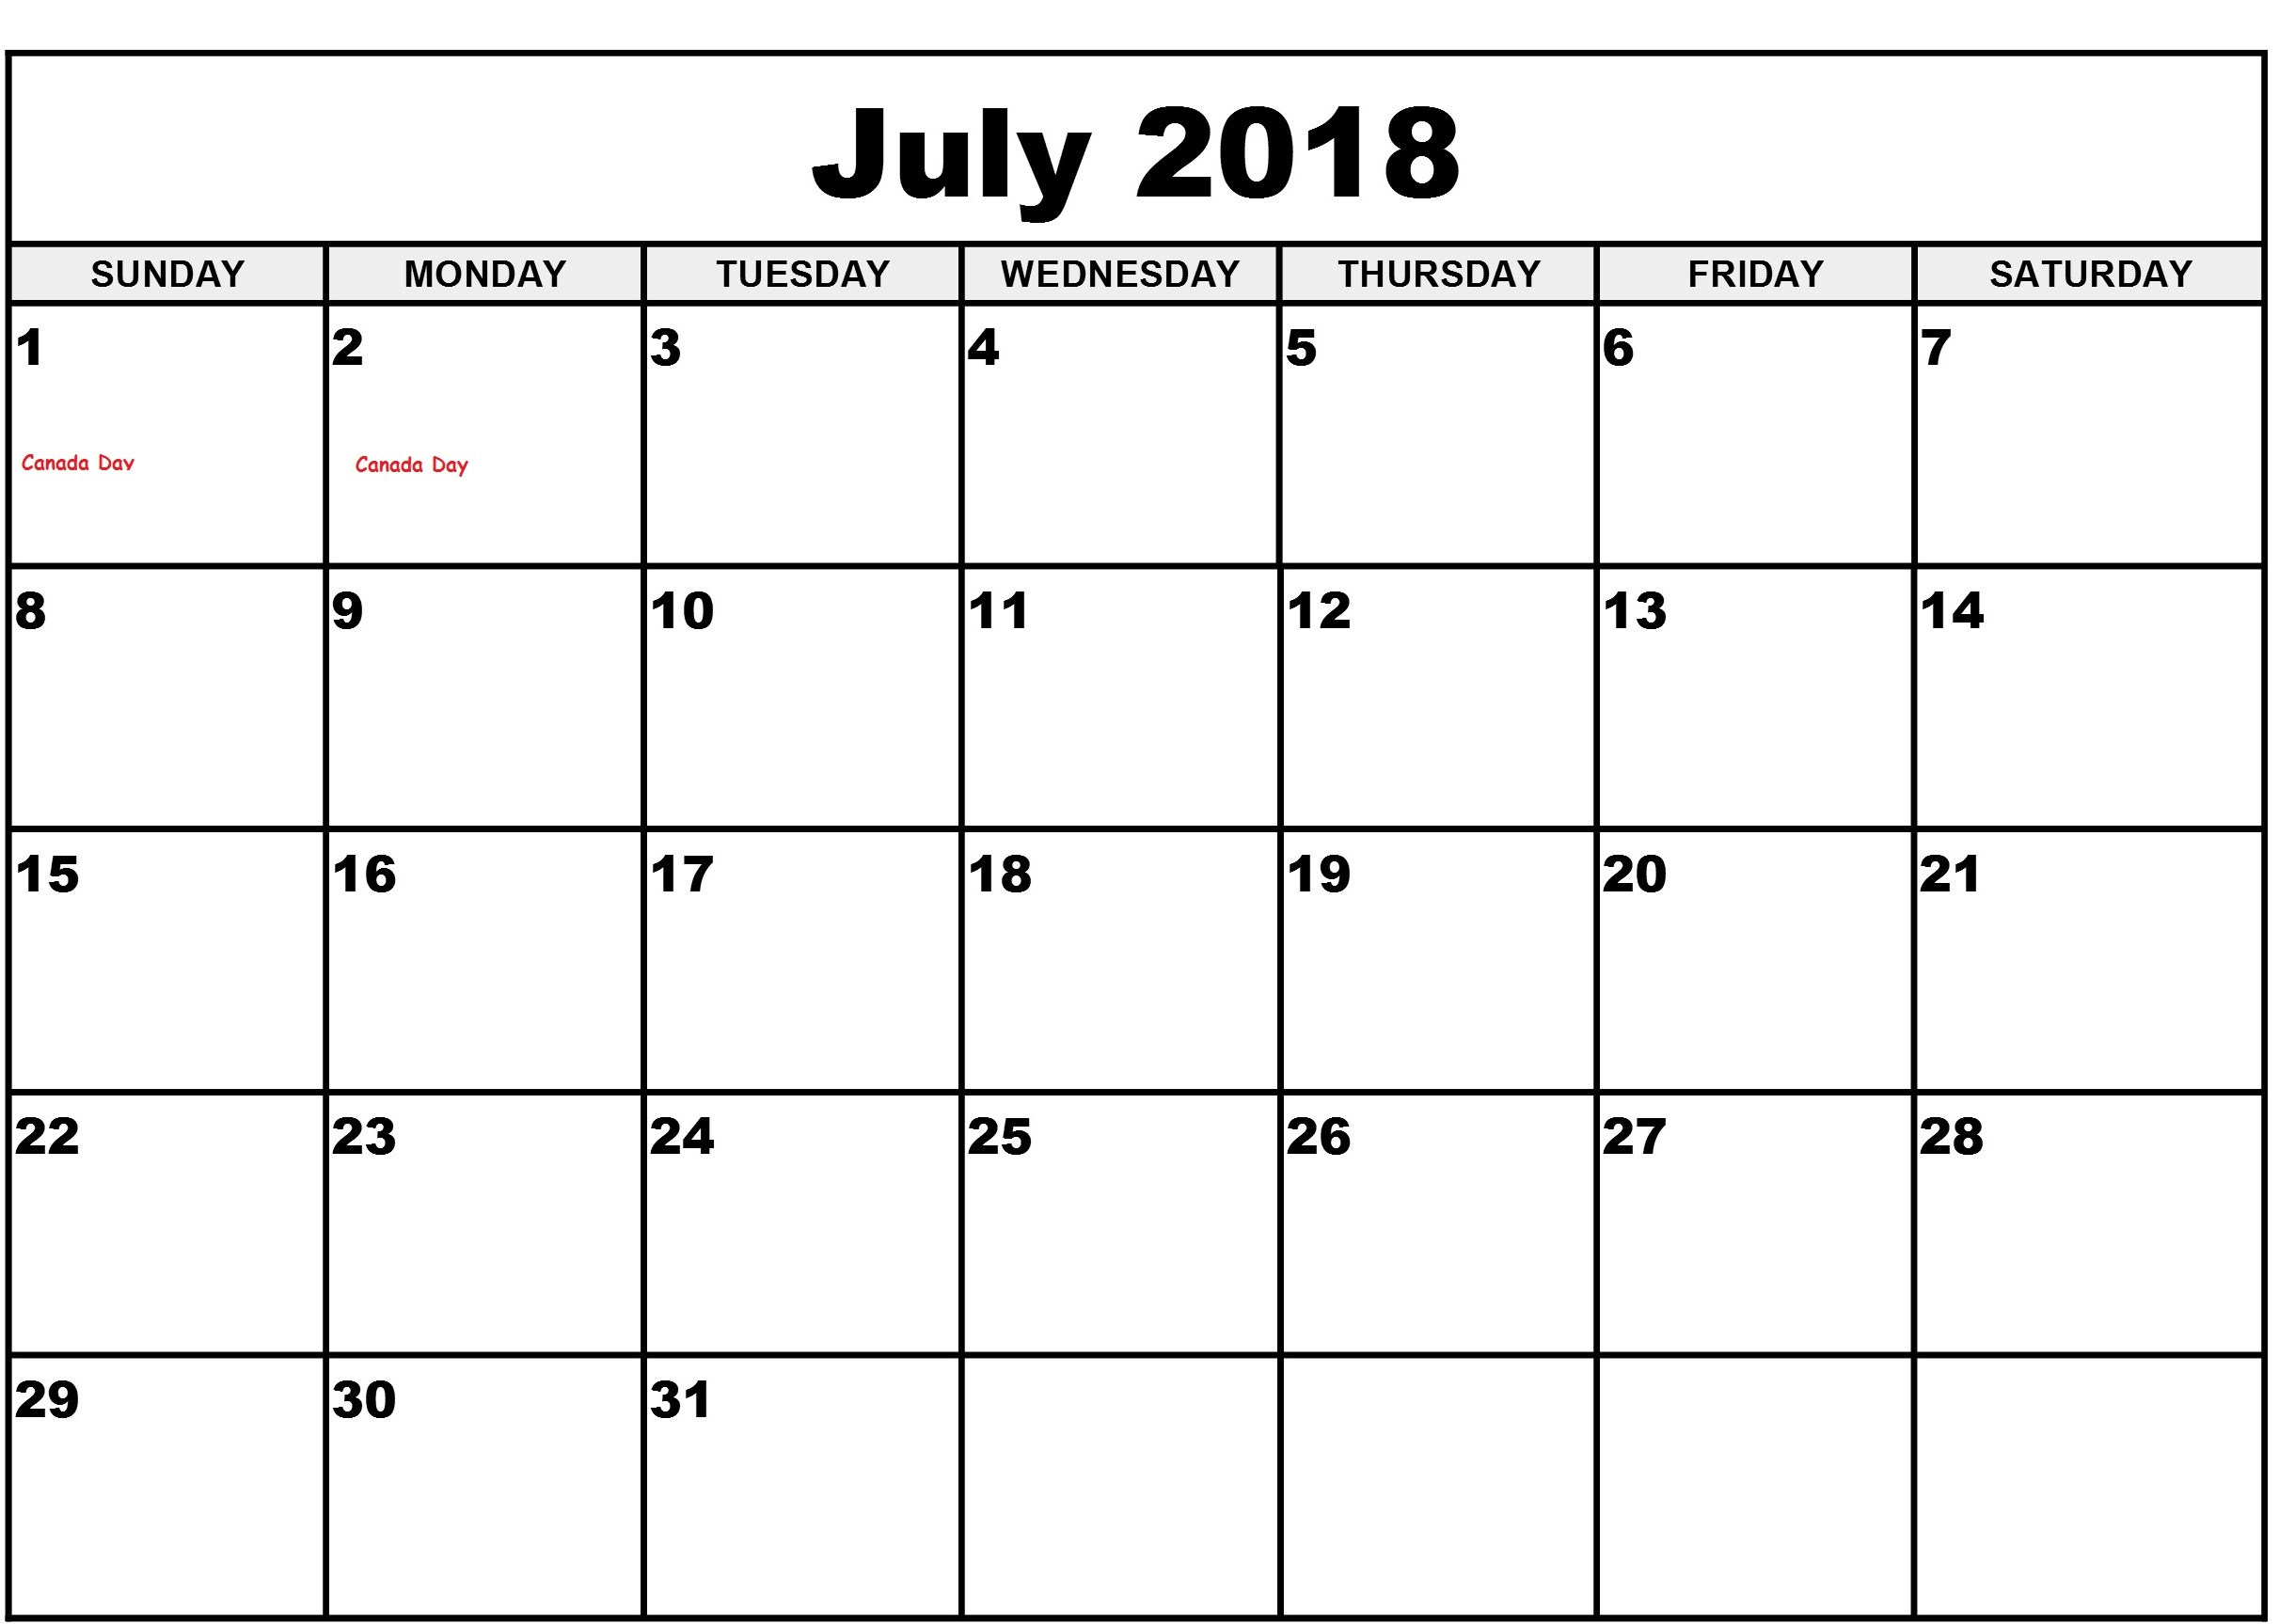 July 2018 Calendar Singapore with Holidays